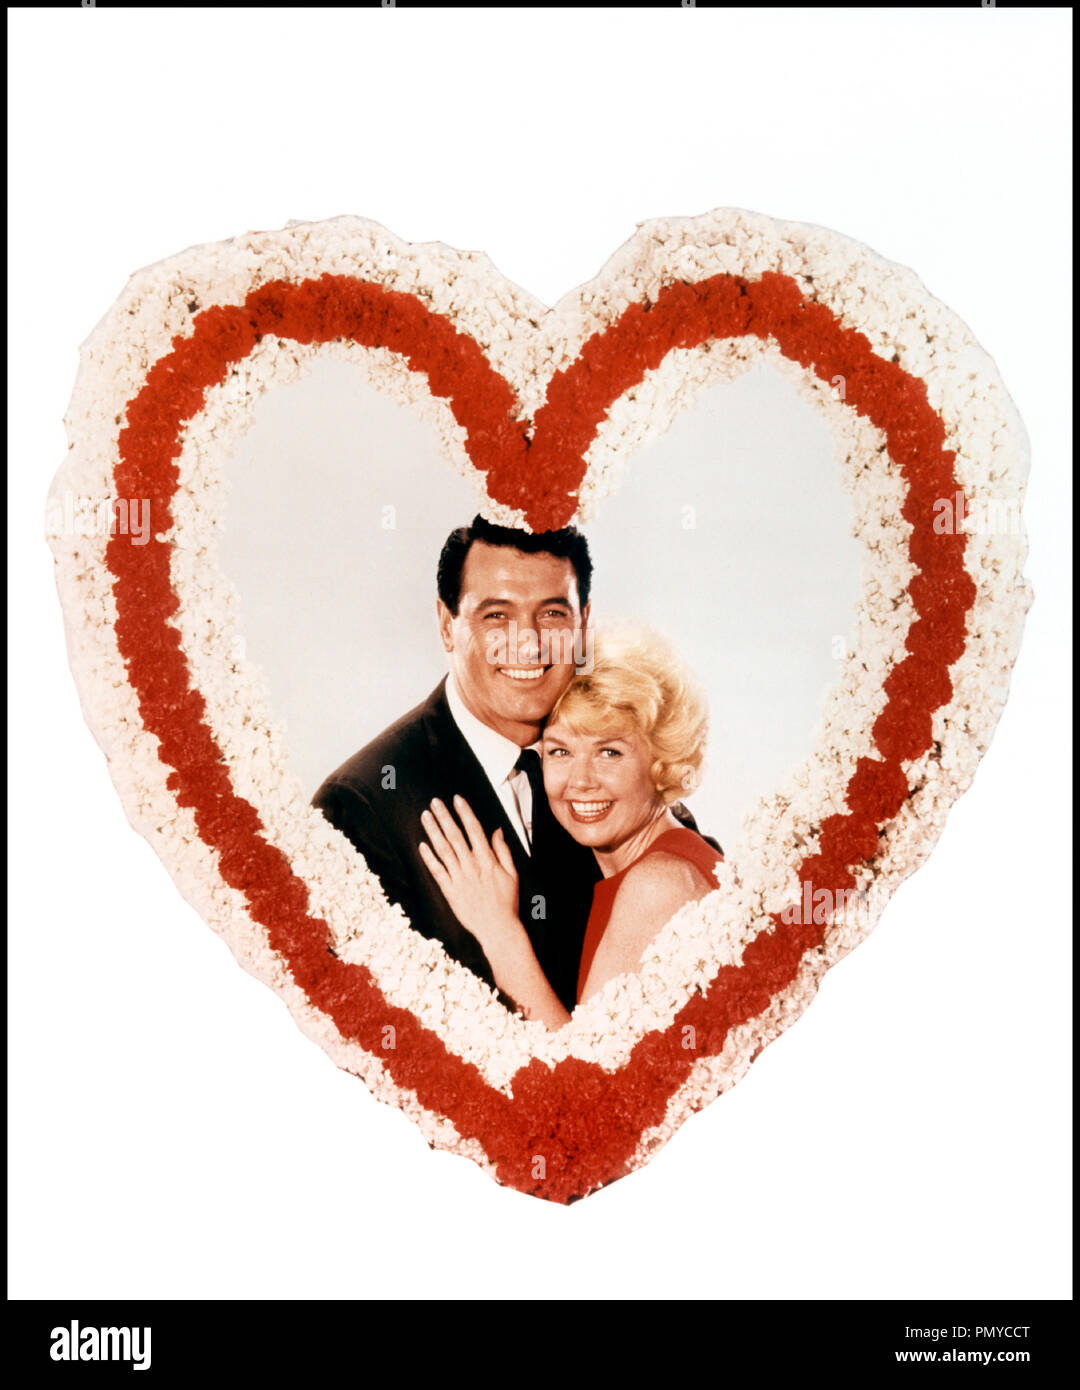 Prod DB © Universal / DR CONFIDENCES SUR L'OREILLER (PILLOW TALK) de Michael Gordon 1959 USA avec Rock Hudson et Doris Day couple amoureux, coeur, cliché, romantique - Stock Image